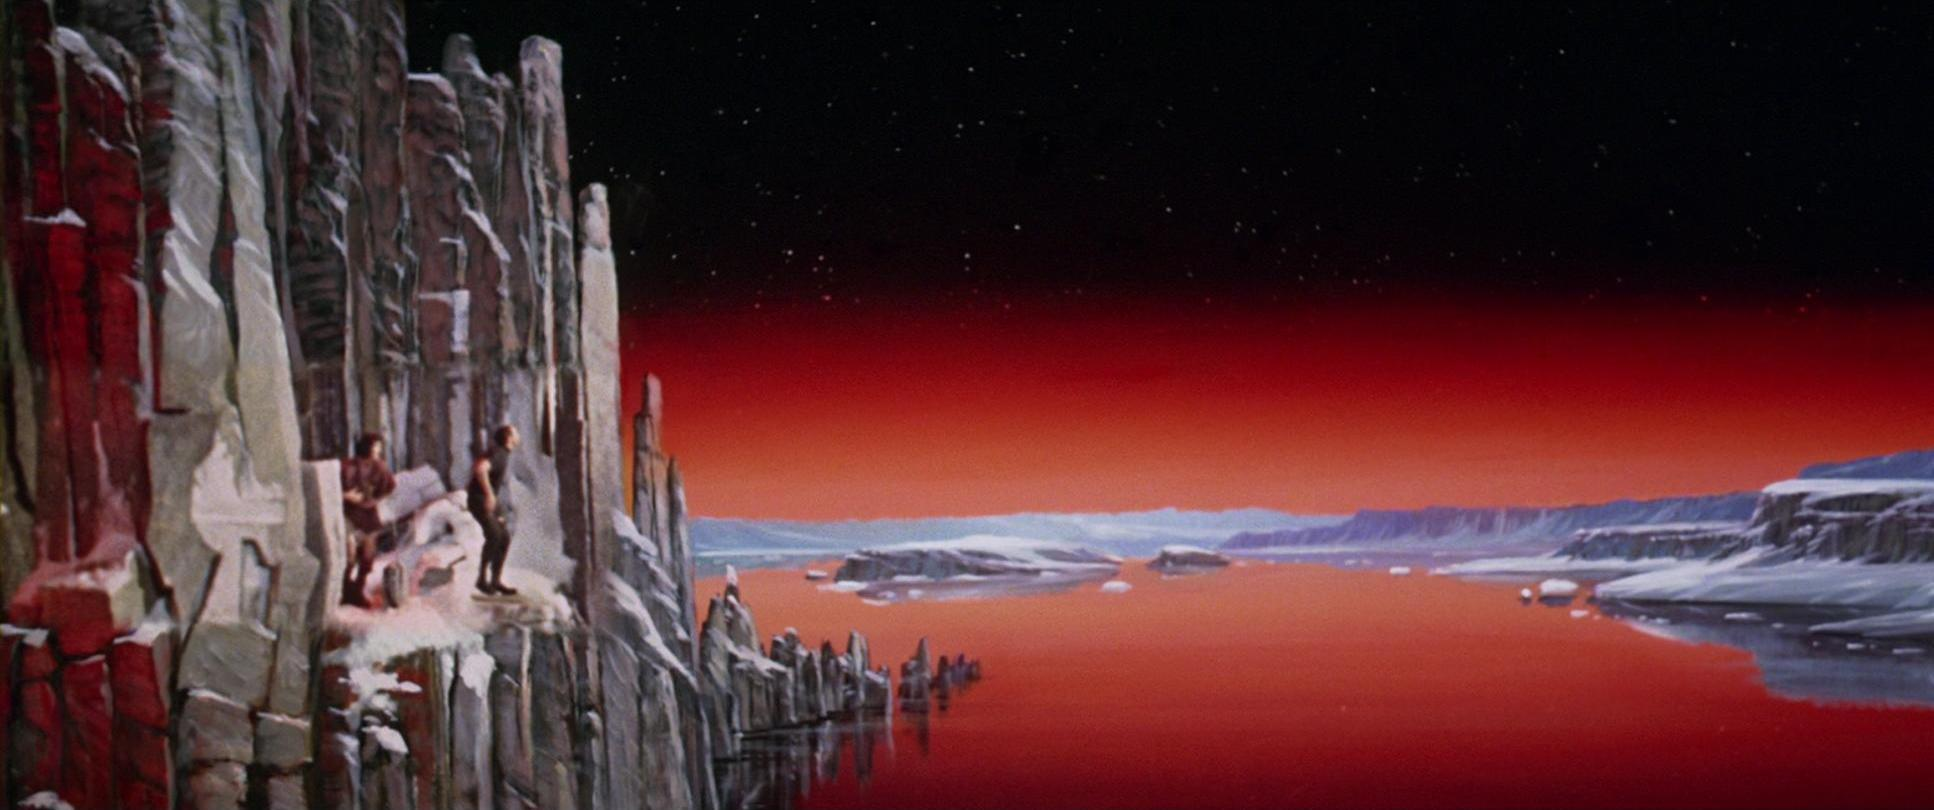 black gate acirc articles acirc that movie about the guy who s stranded on robinson crusoe on mars blu ray still small